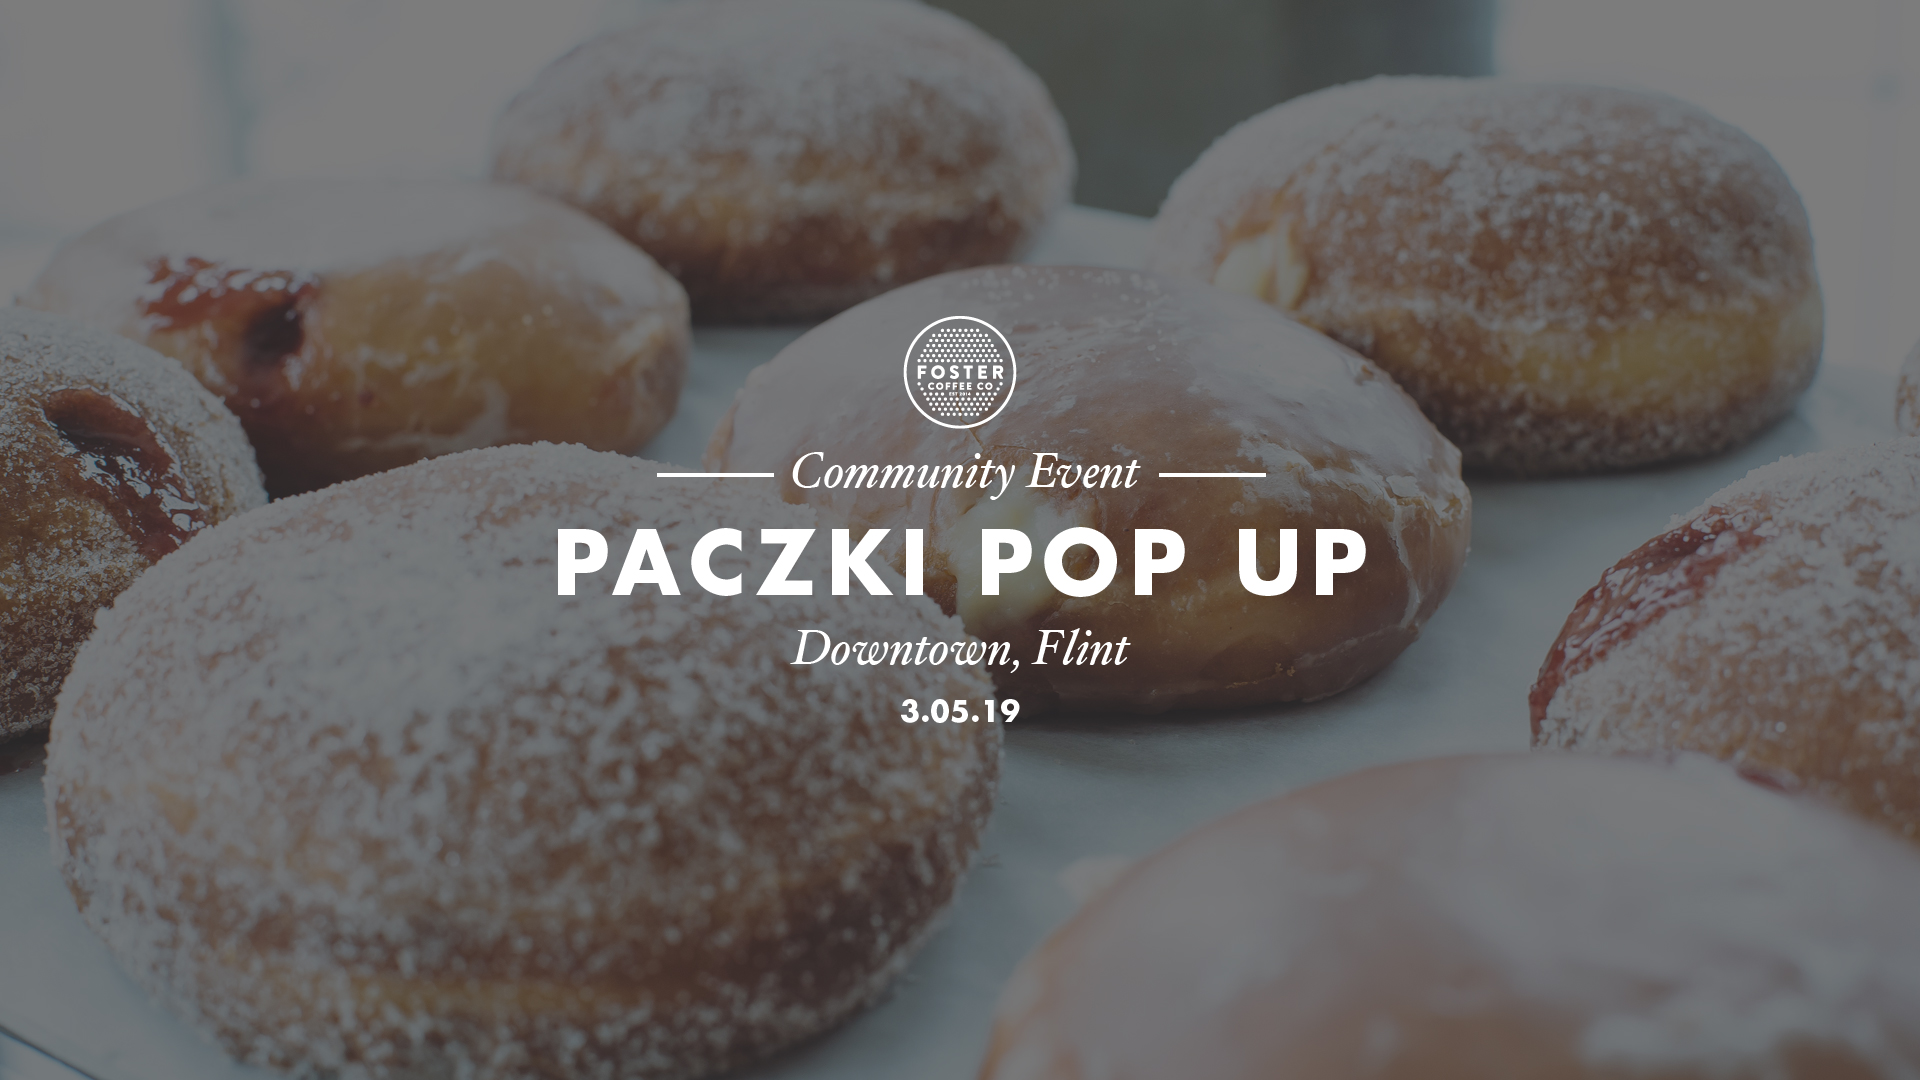 Paczki_Pop-up.jpg